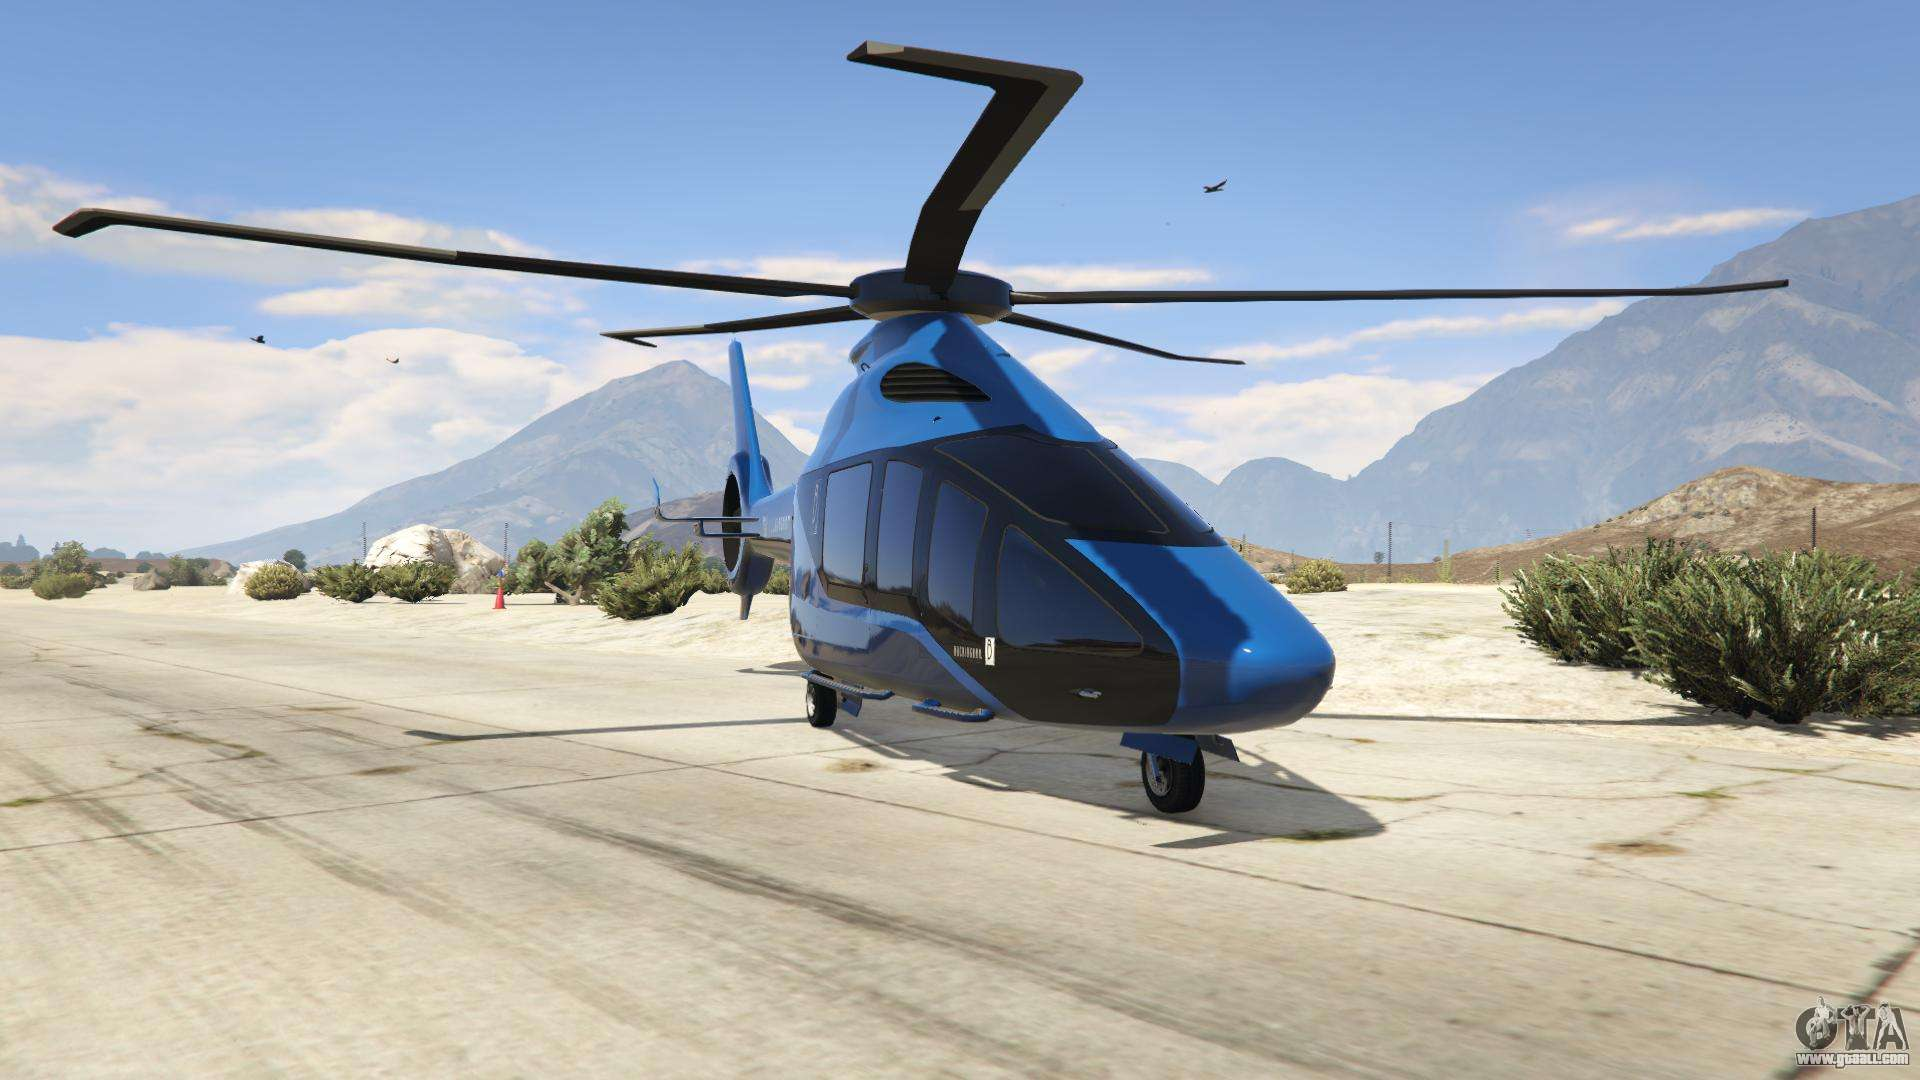 gta san andreas helicopter mods with 27988 Buckingham Volatus on 2 moreover 124 volvobus additionally 3666 Ufo Atack in addition 25729 Rabota Pilotom likewise 97532 Boeing Mh 47g Chinook Replace.